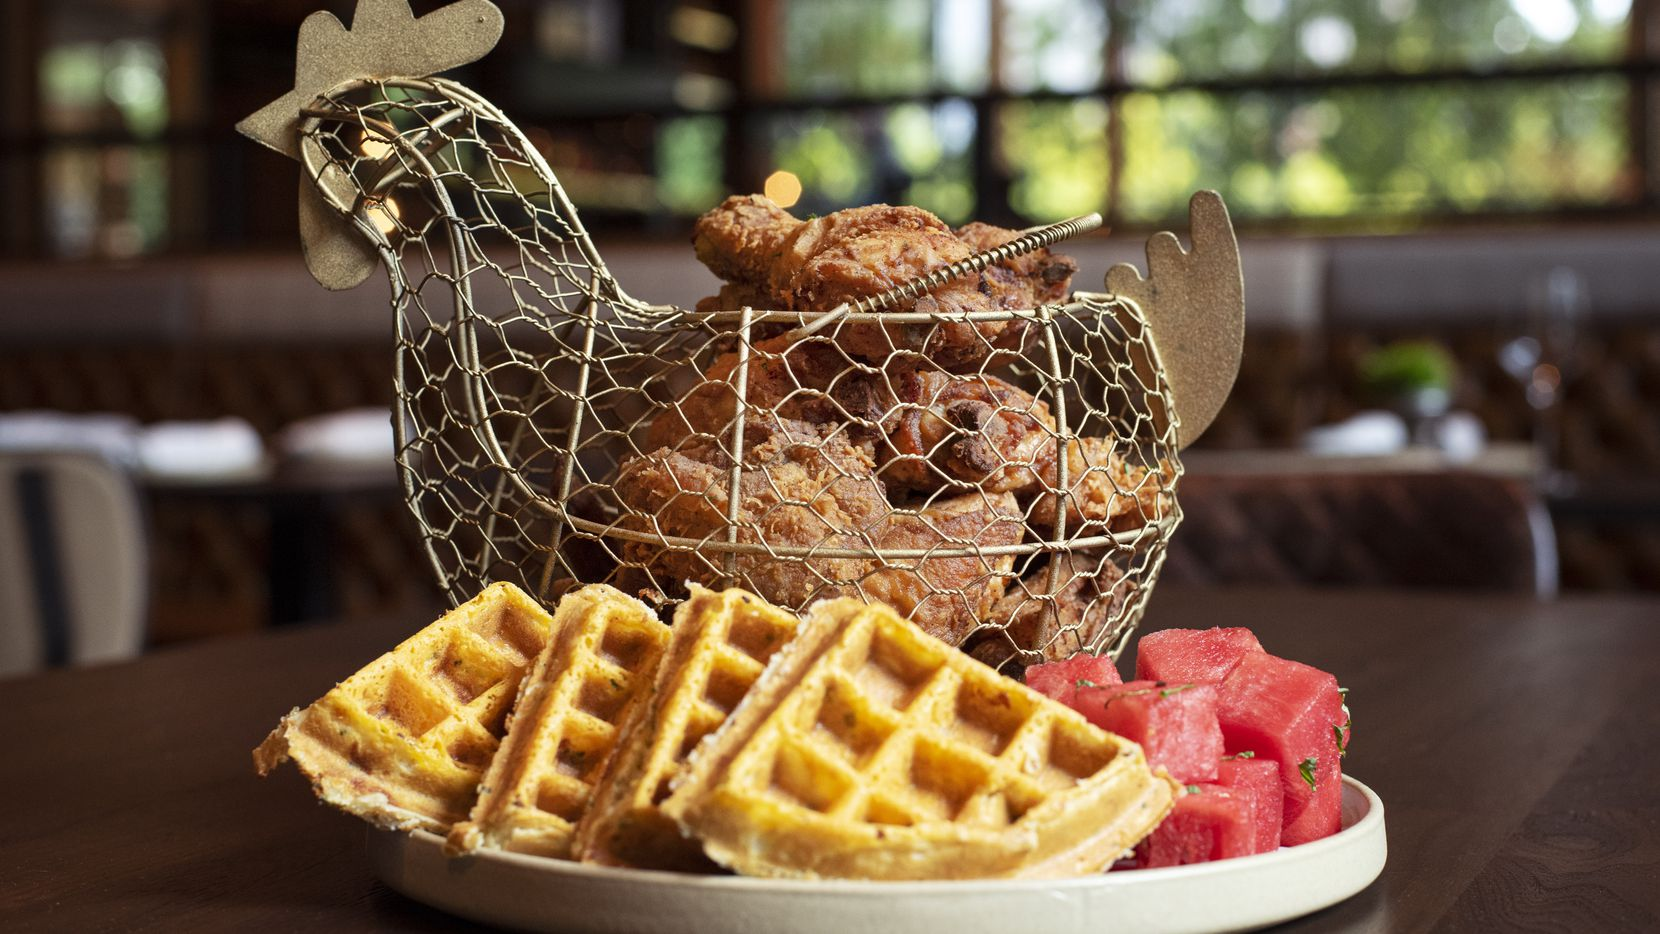 The Whole Bird at Yardbird Southern Table & Bar in Uptown Dallas is a stack of fried chicken served with watermelon and waffles. The restaurant opened Sept. 17, 2020.